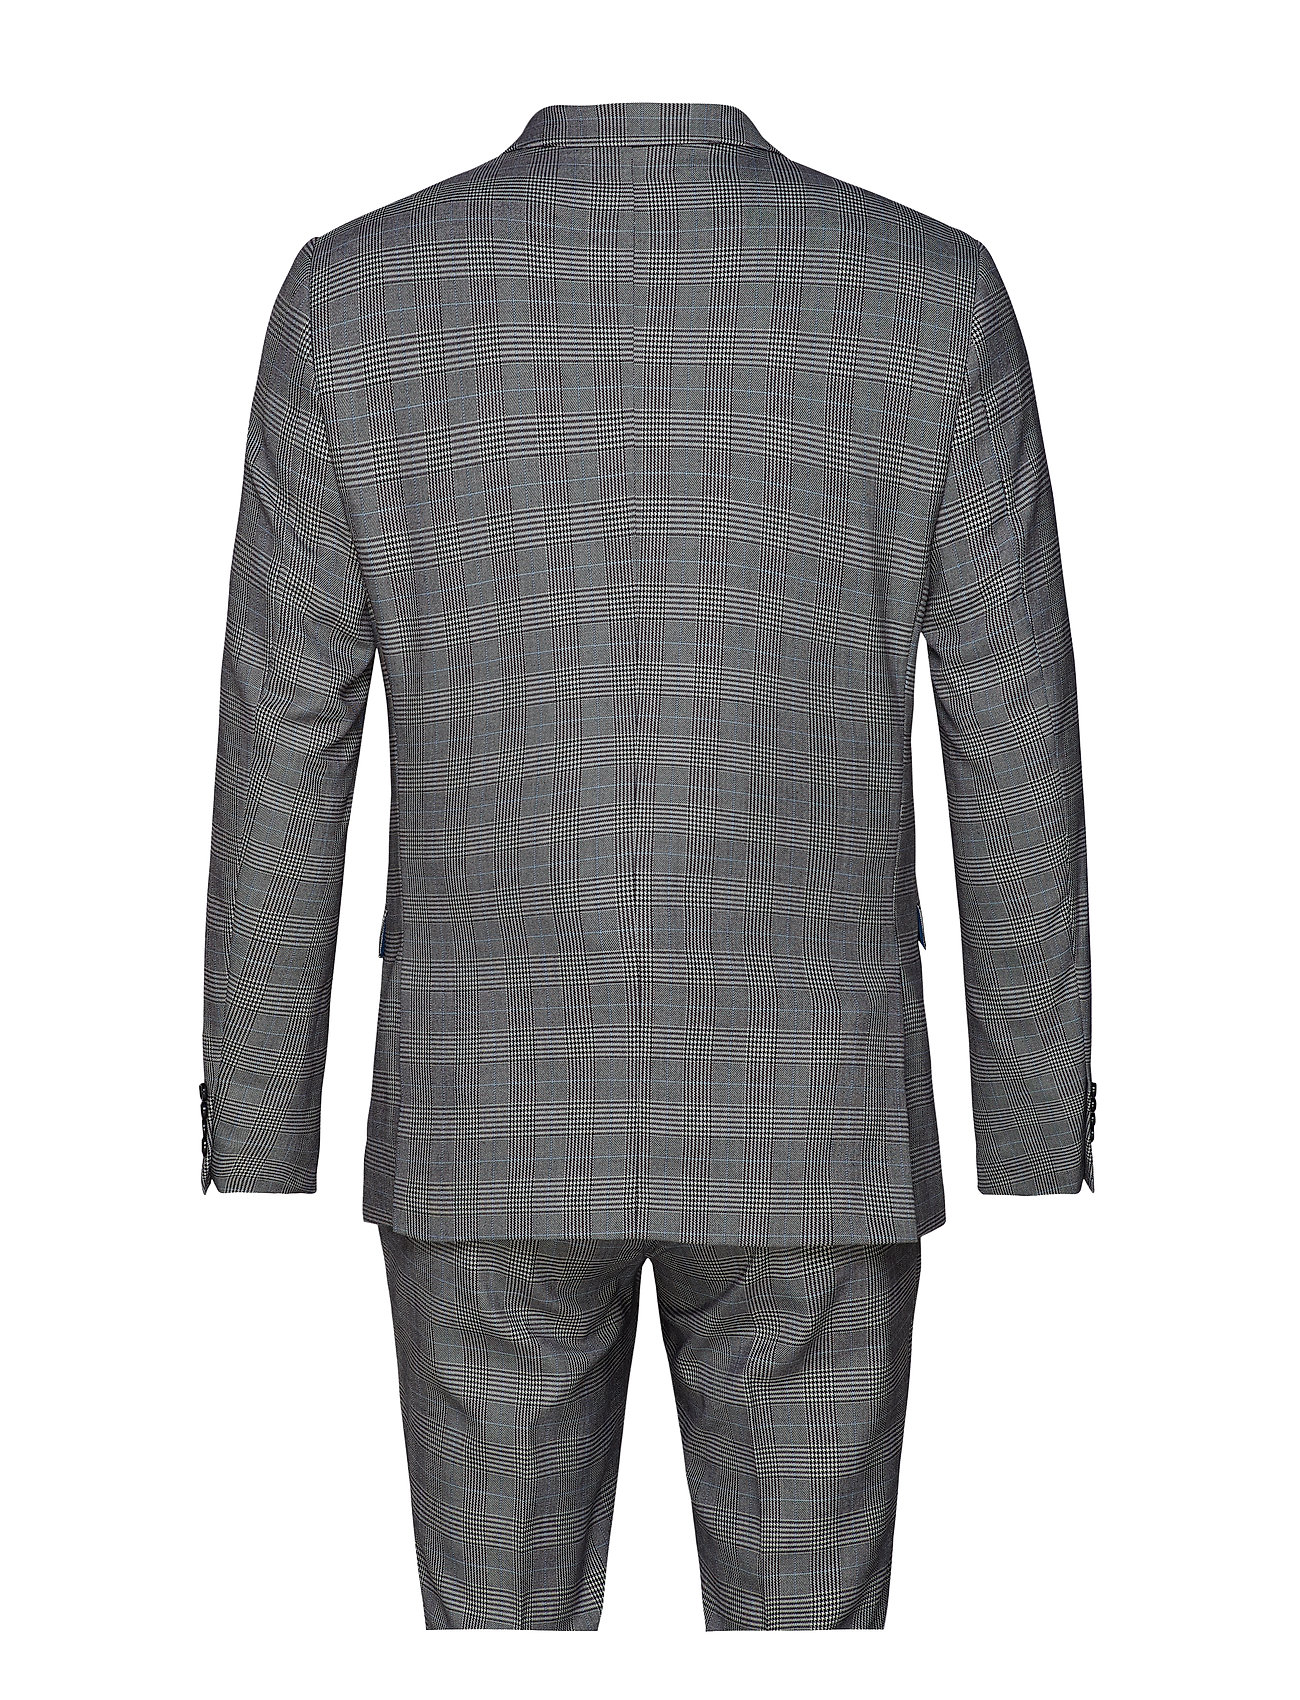 CheckLindbergh CheckLindbergh Suitgrey Checked CheckLindbergh Suitgrey Checked Checked Suitgrey PkTwiZOXu